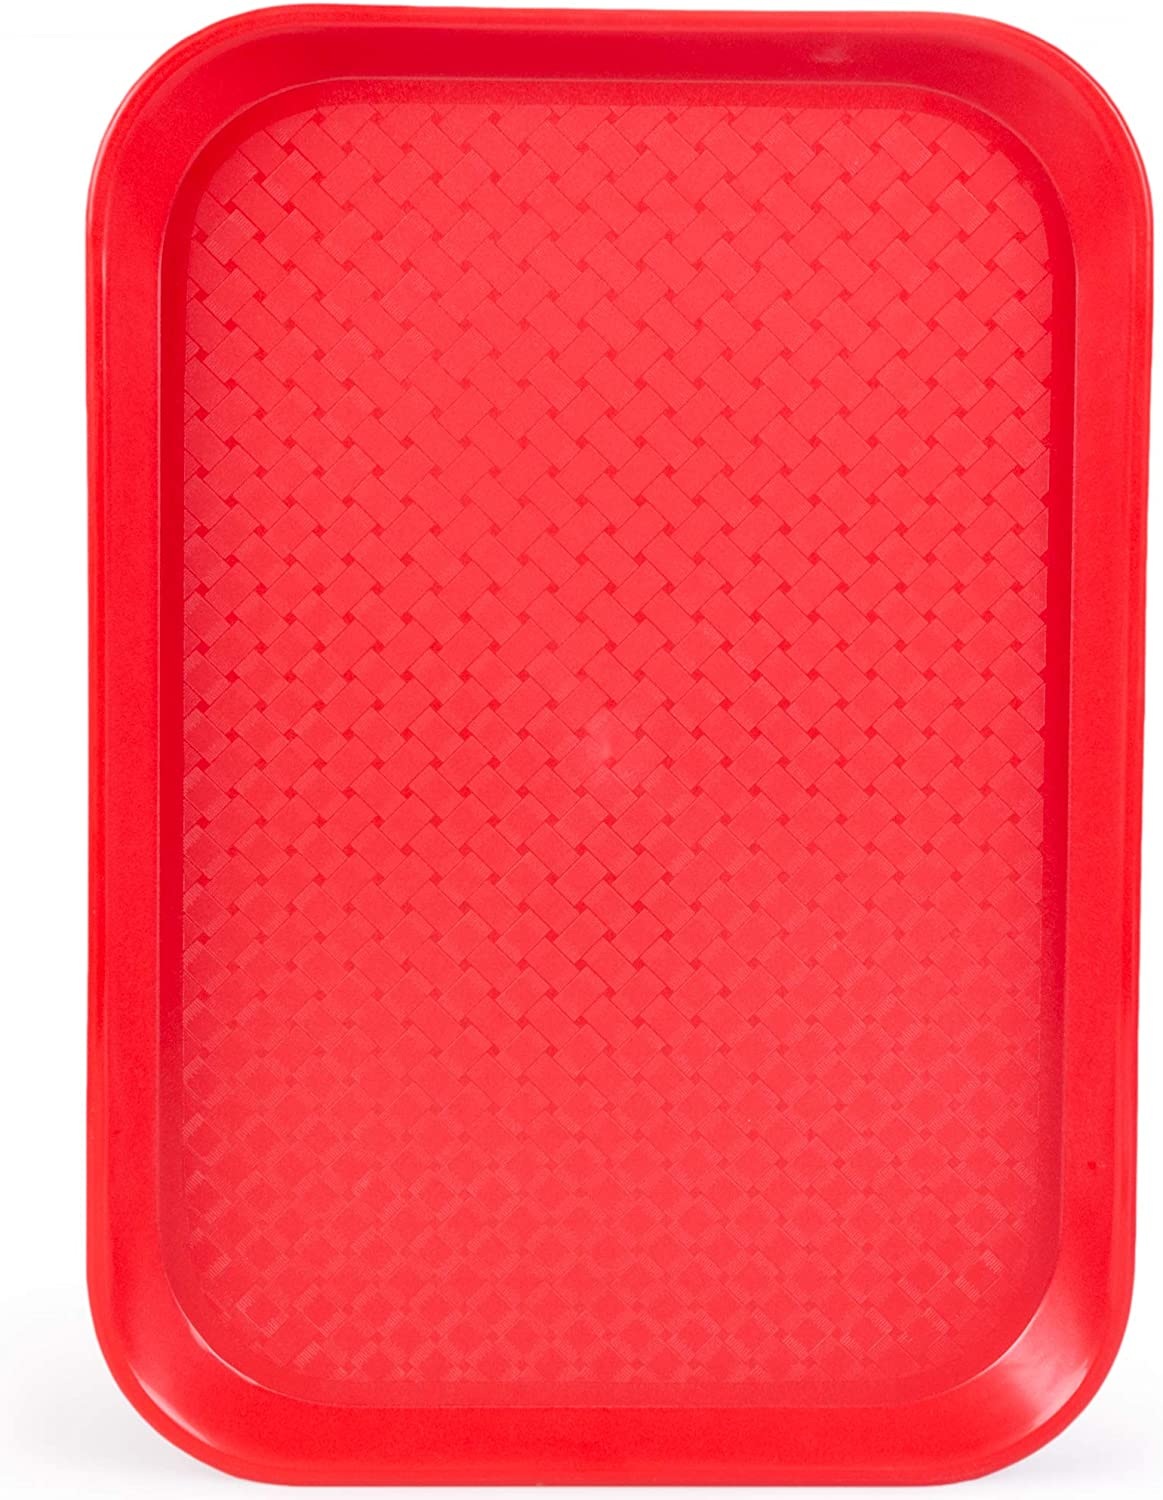 Fast Food Cafeteria Tray | 10 x 14 Rectangular Textured Plastic Food Serving TV Tray | School Lunch, Diner, Commercial Kitchen Restaurant Equipment (Red)